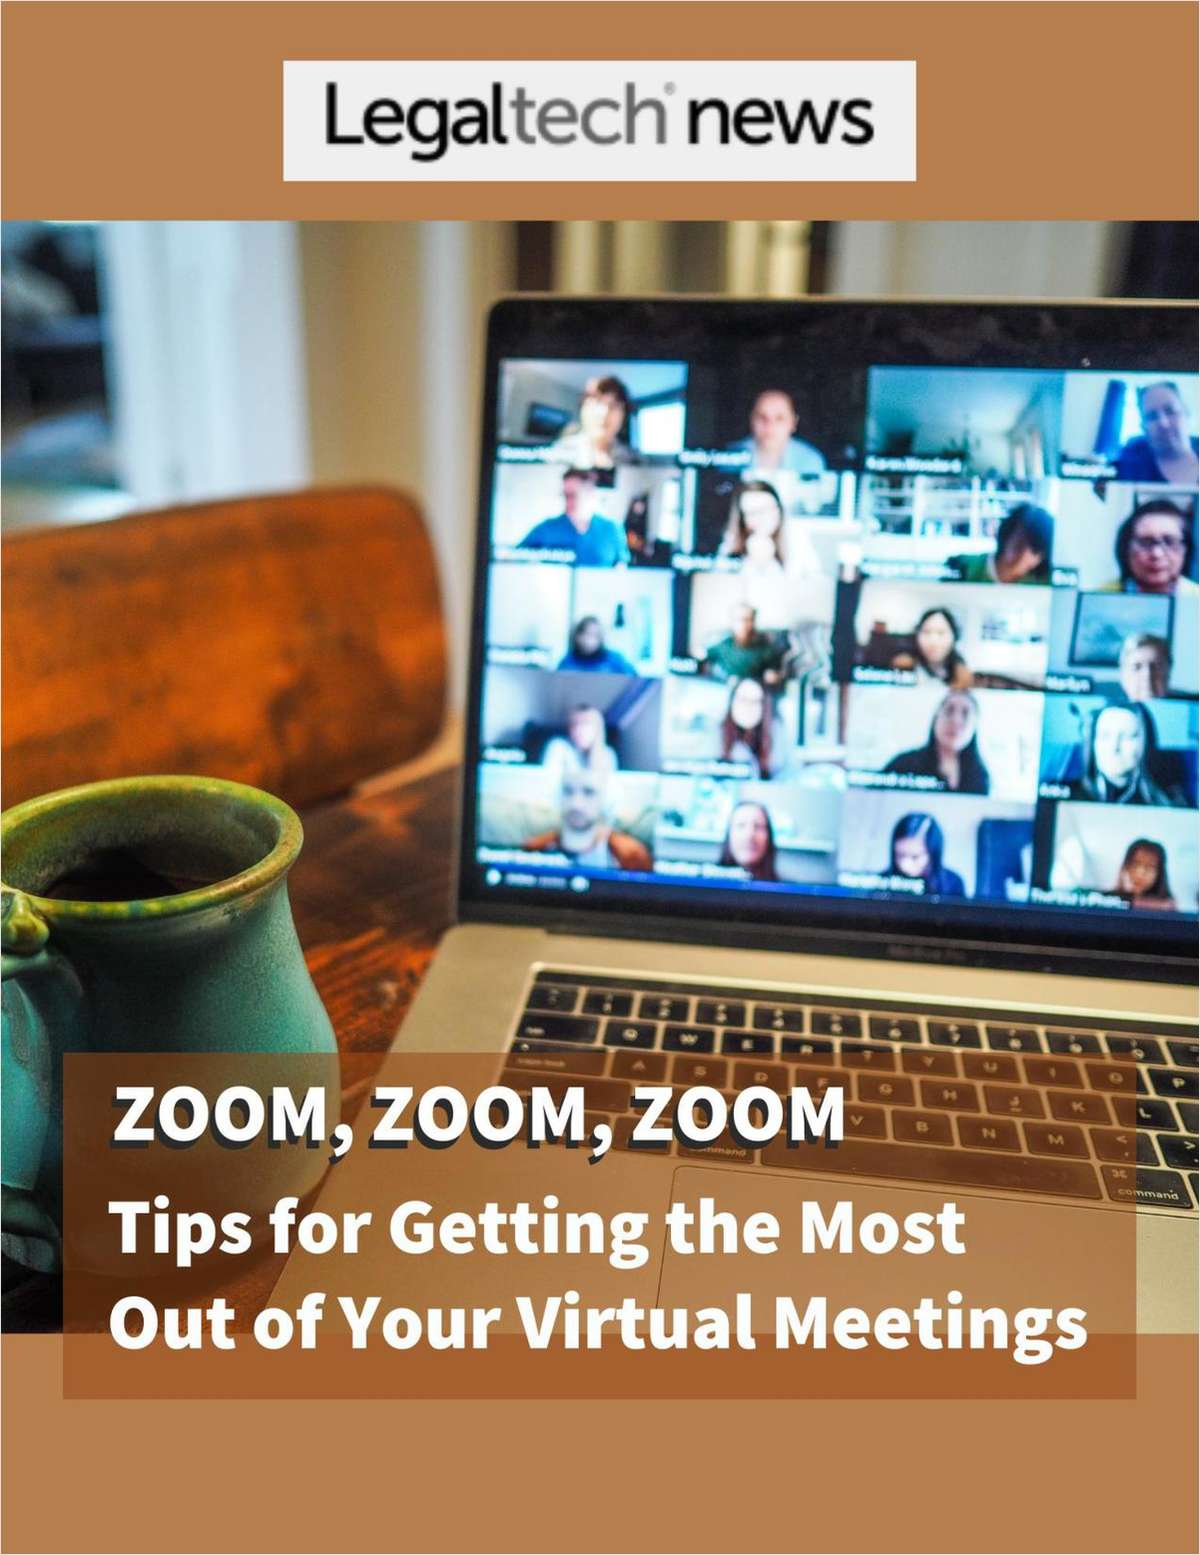 Zoom, Zoom, Zoom: Tips for Getting the Most Out of Your Virtual Meetings